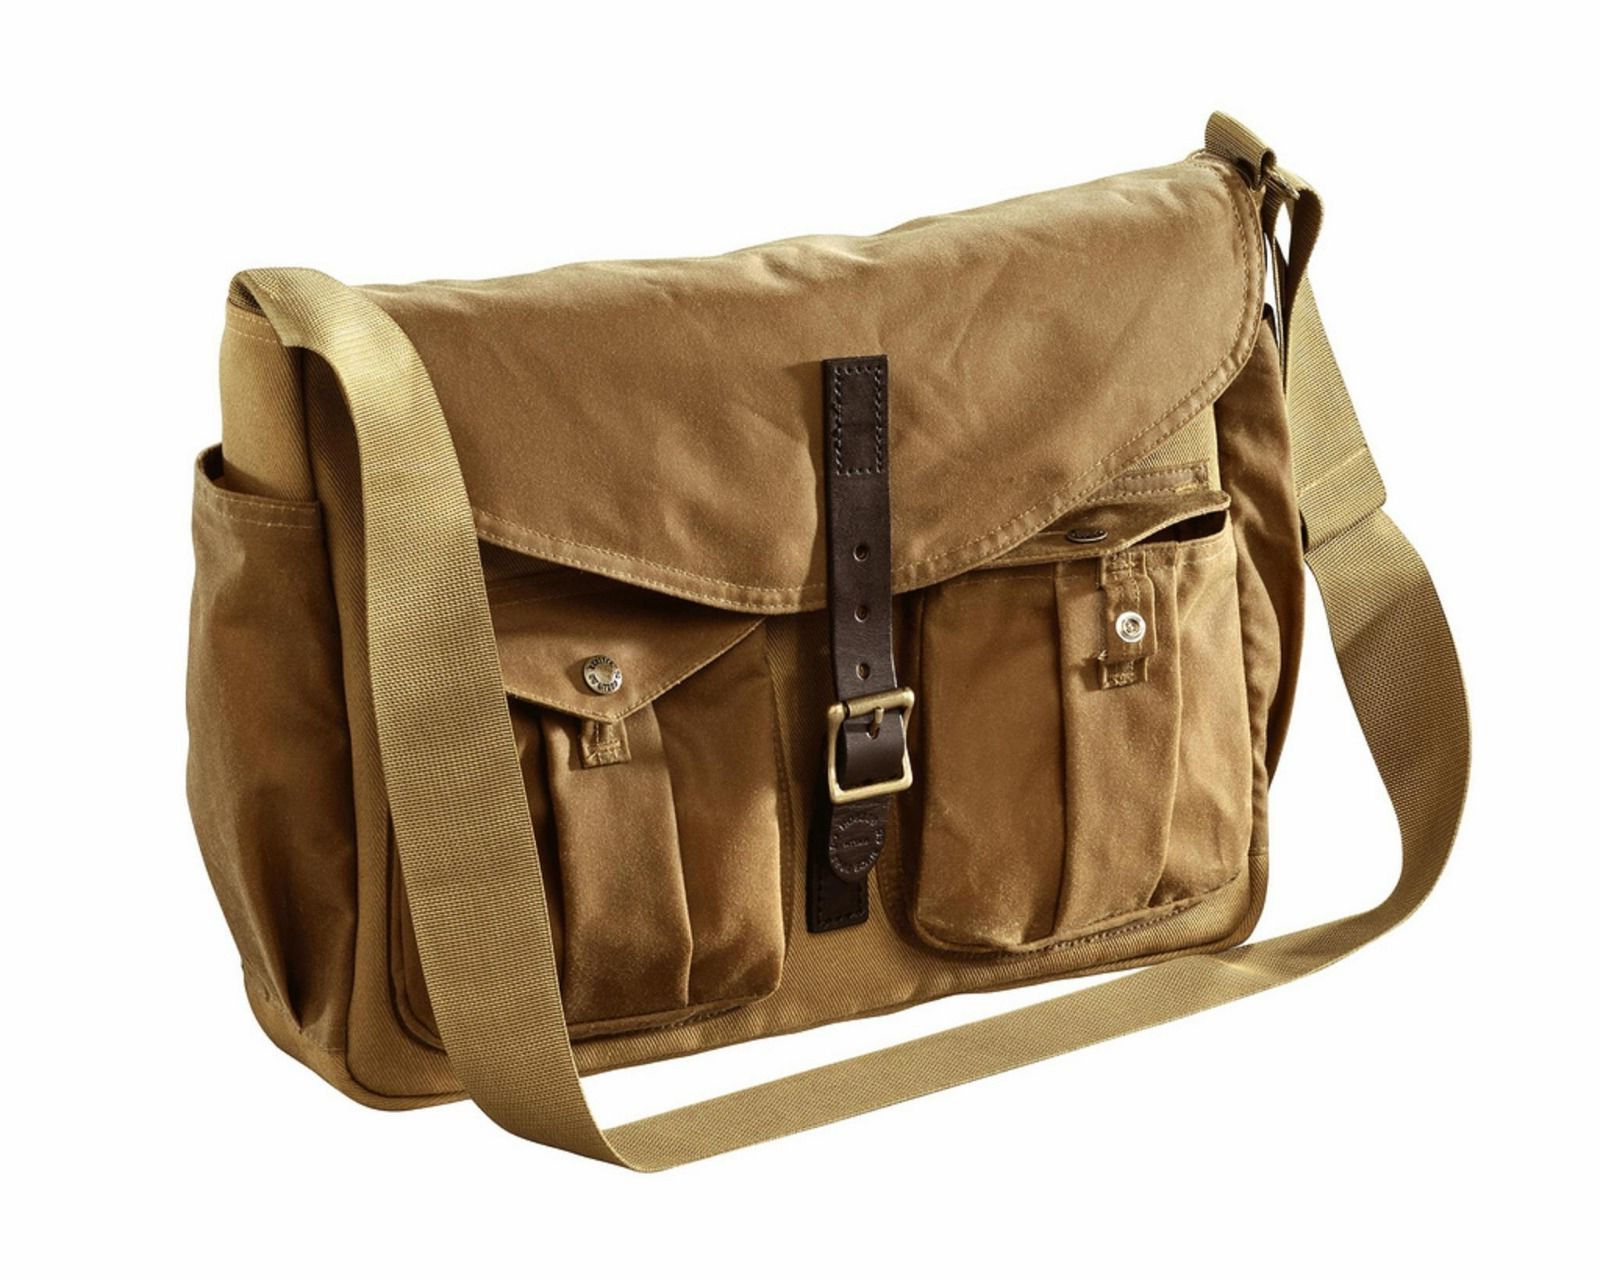 filson messenger bag bentley bags messenger bag pattern